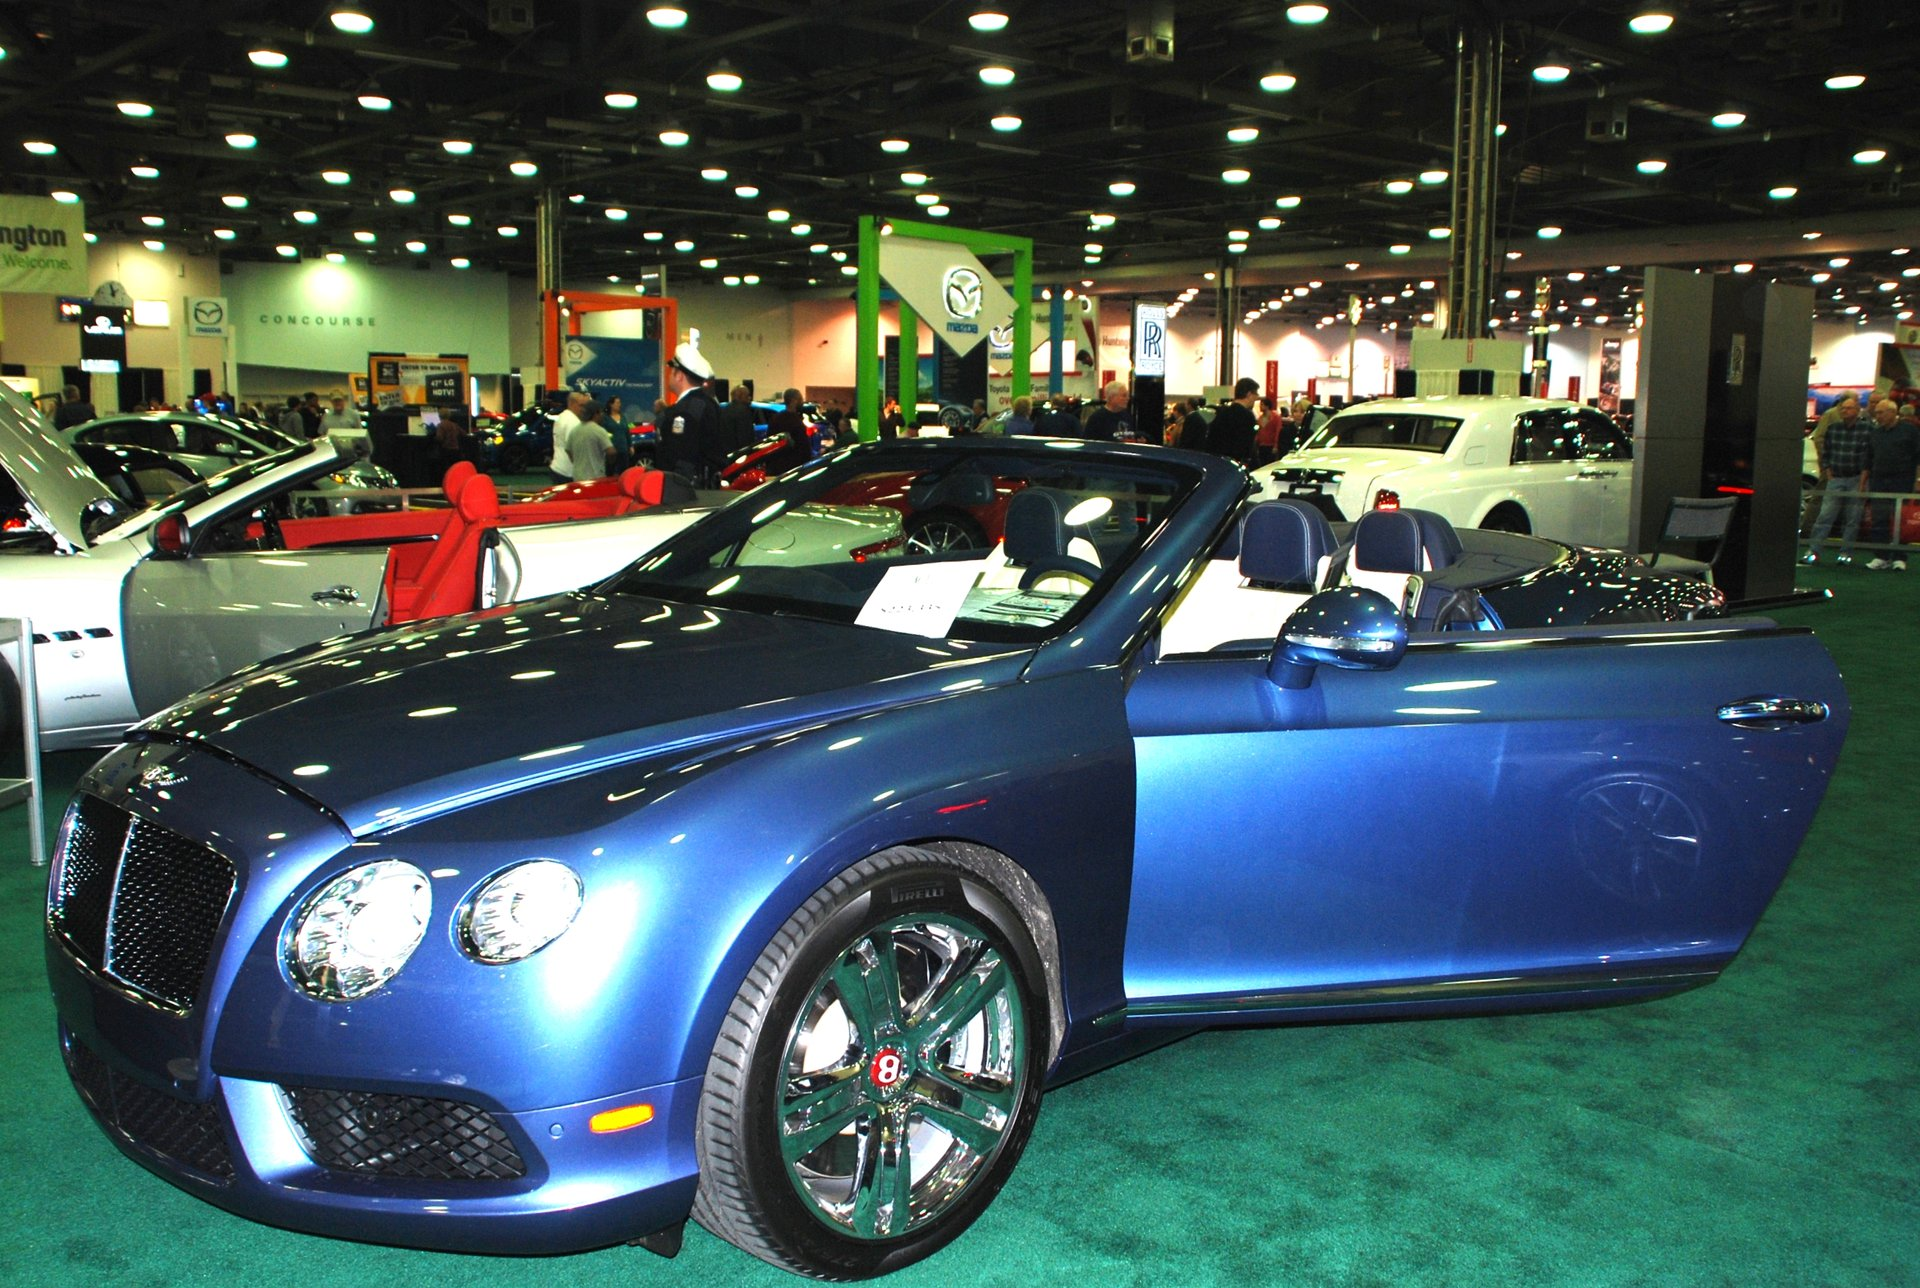 Columbus International Auto Show in Ohio 2020 - Best Time